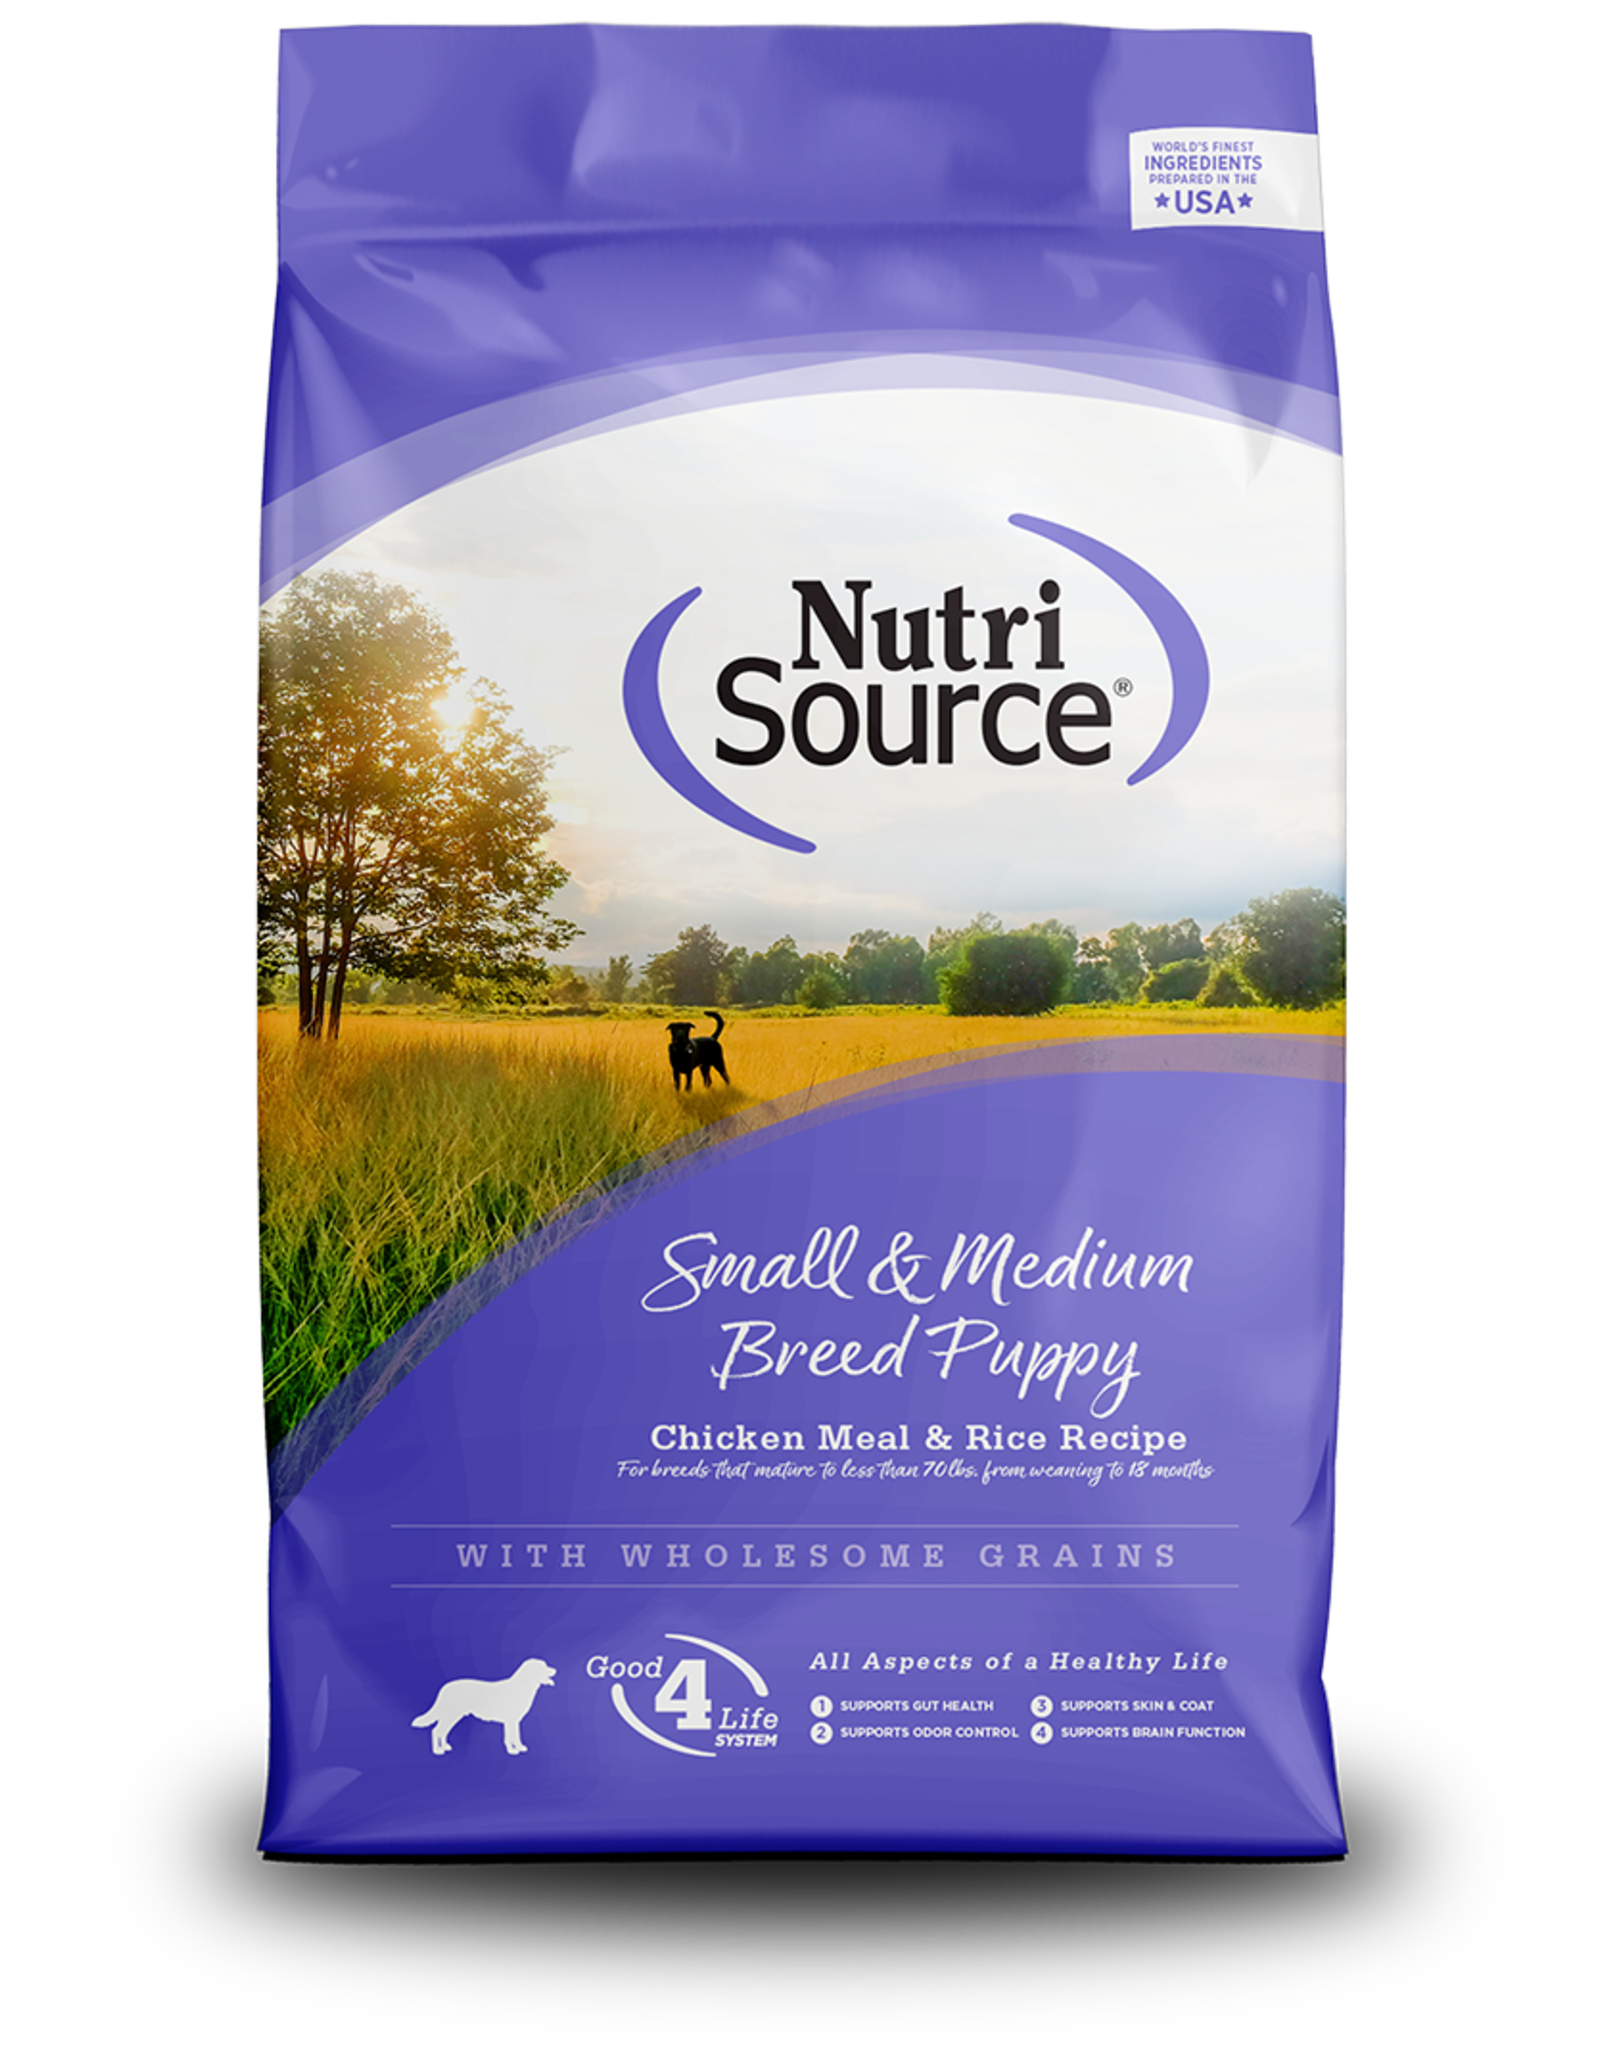 NutriSource NutriSource Dry Dog Food Small & Medium Breed Puppy Chicken Meal & Rice Recipe Grain Inclusive